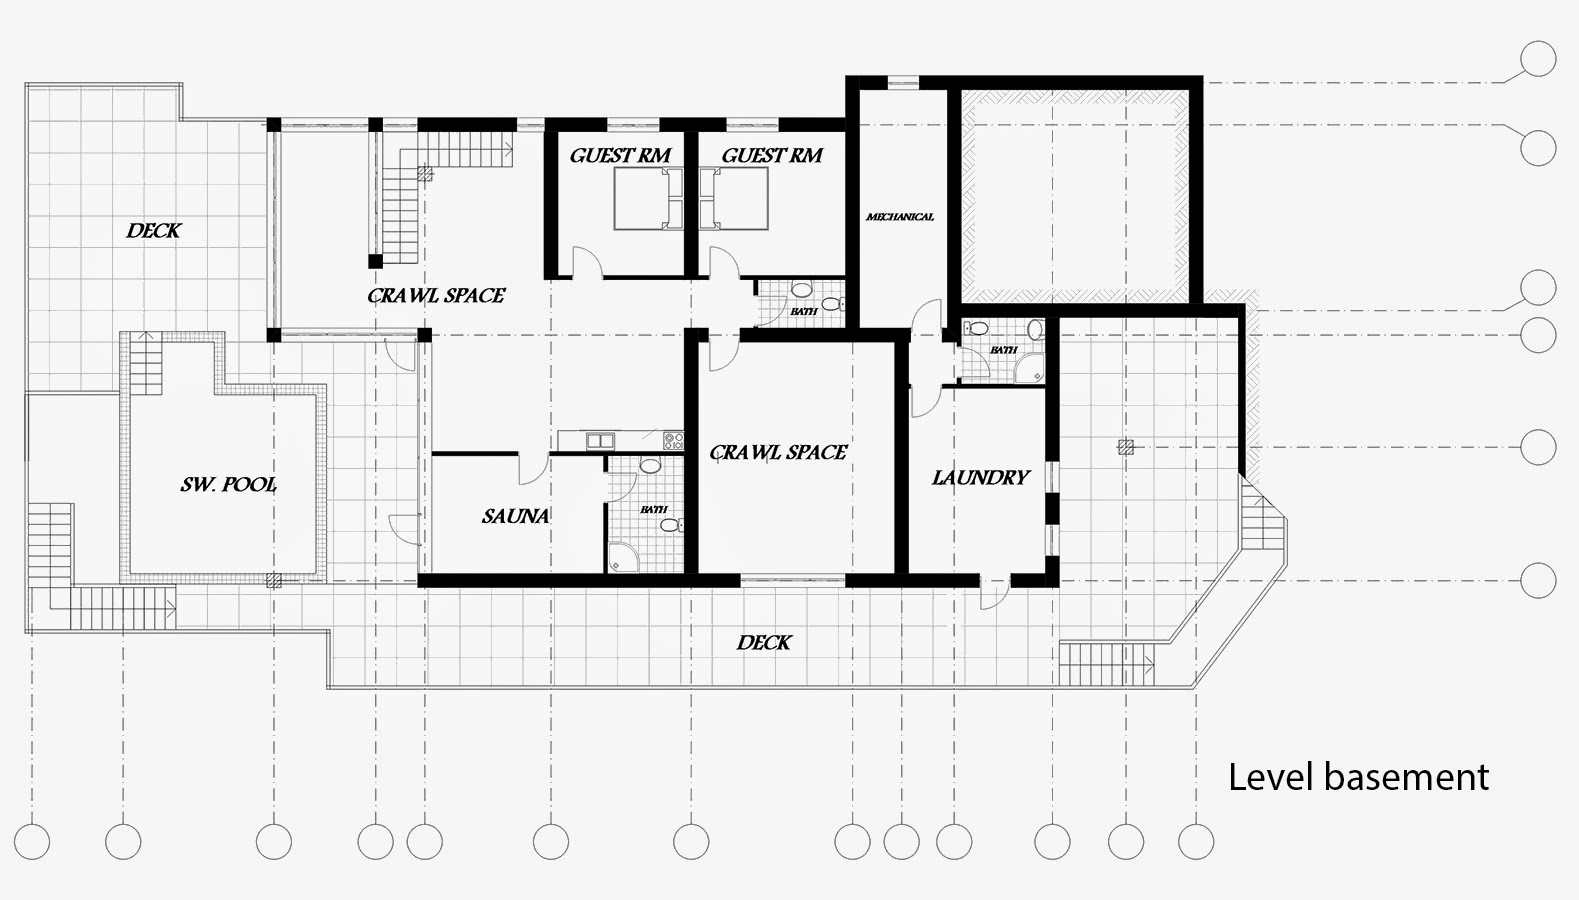 Crawl Space House Plans 2 bedroom apartment near me modern home interior designs